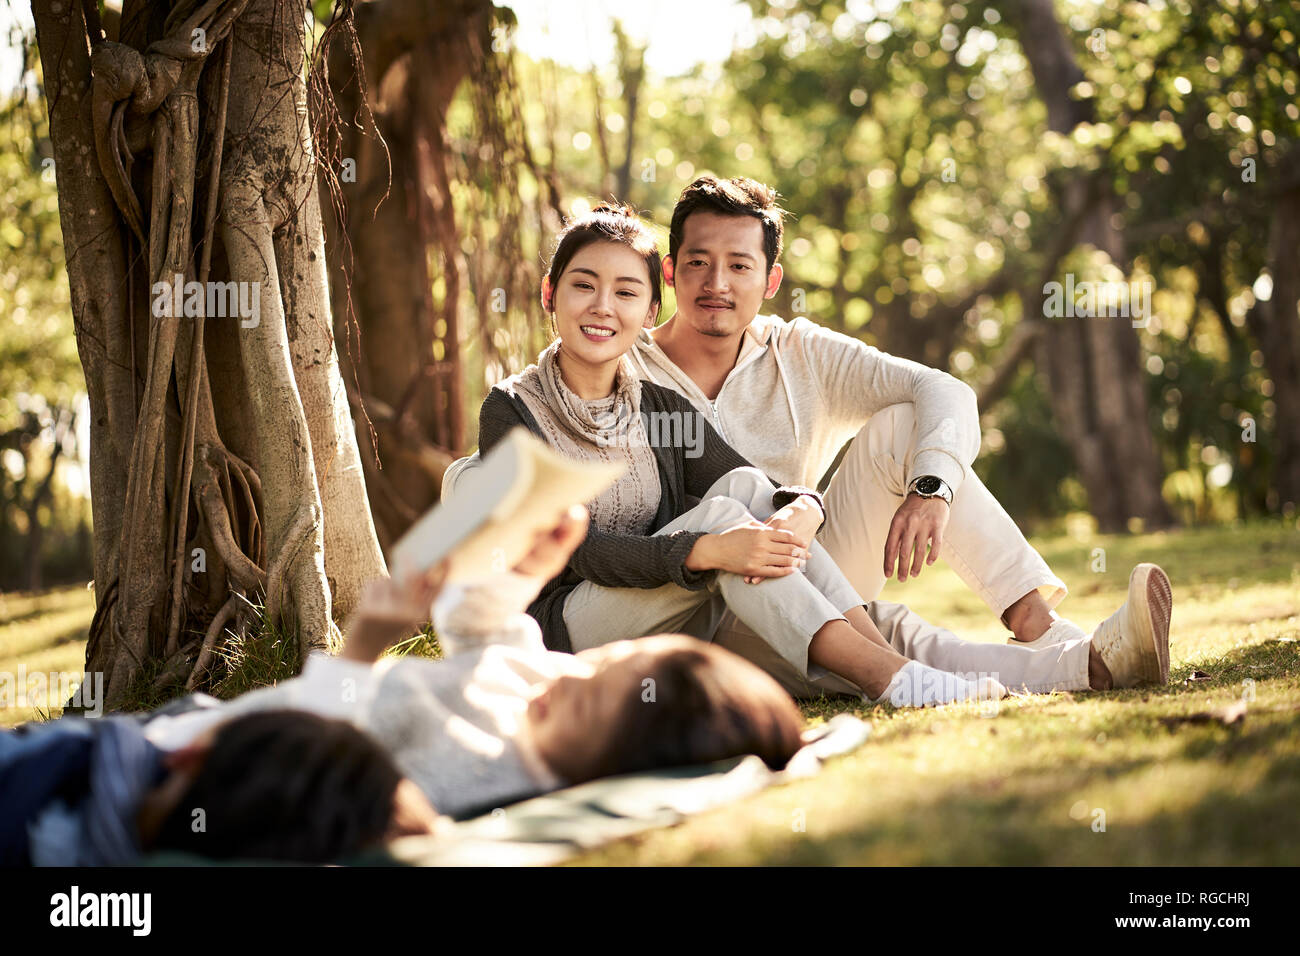 two asian children little boy and girl having fun lying on grass reading a book with parents sitting watching in background, focus on the parents in b Stock Photo